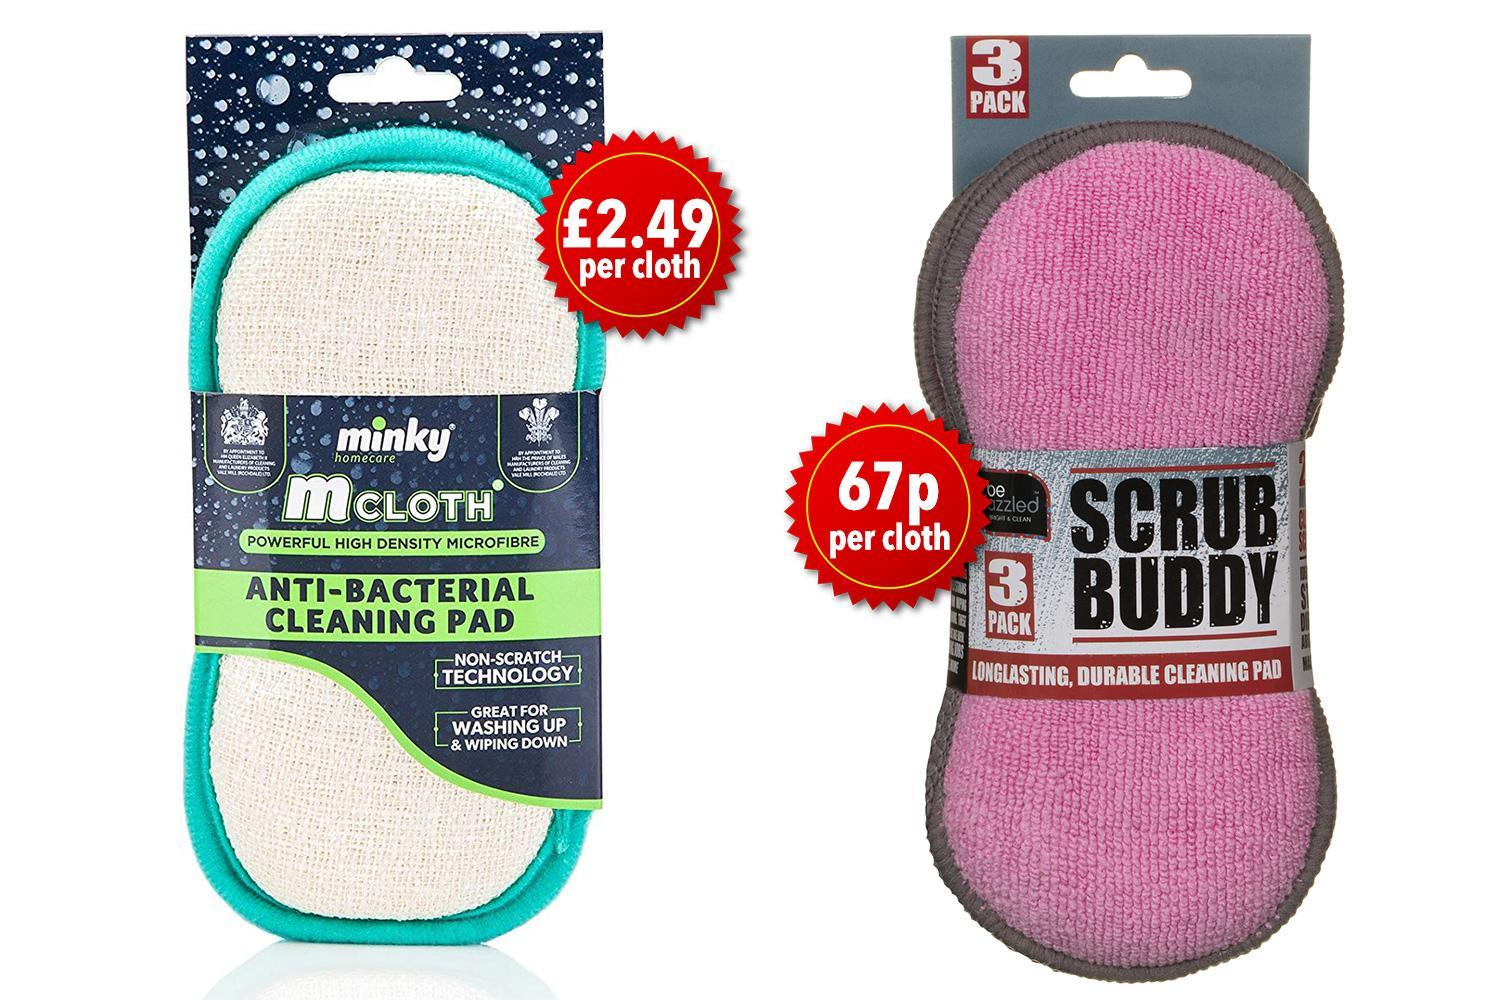 B&M is launching its own version of Mrs Hinch's favourite minky cleaning cloth and it costs £2 less